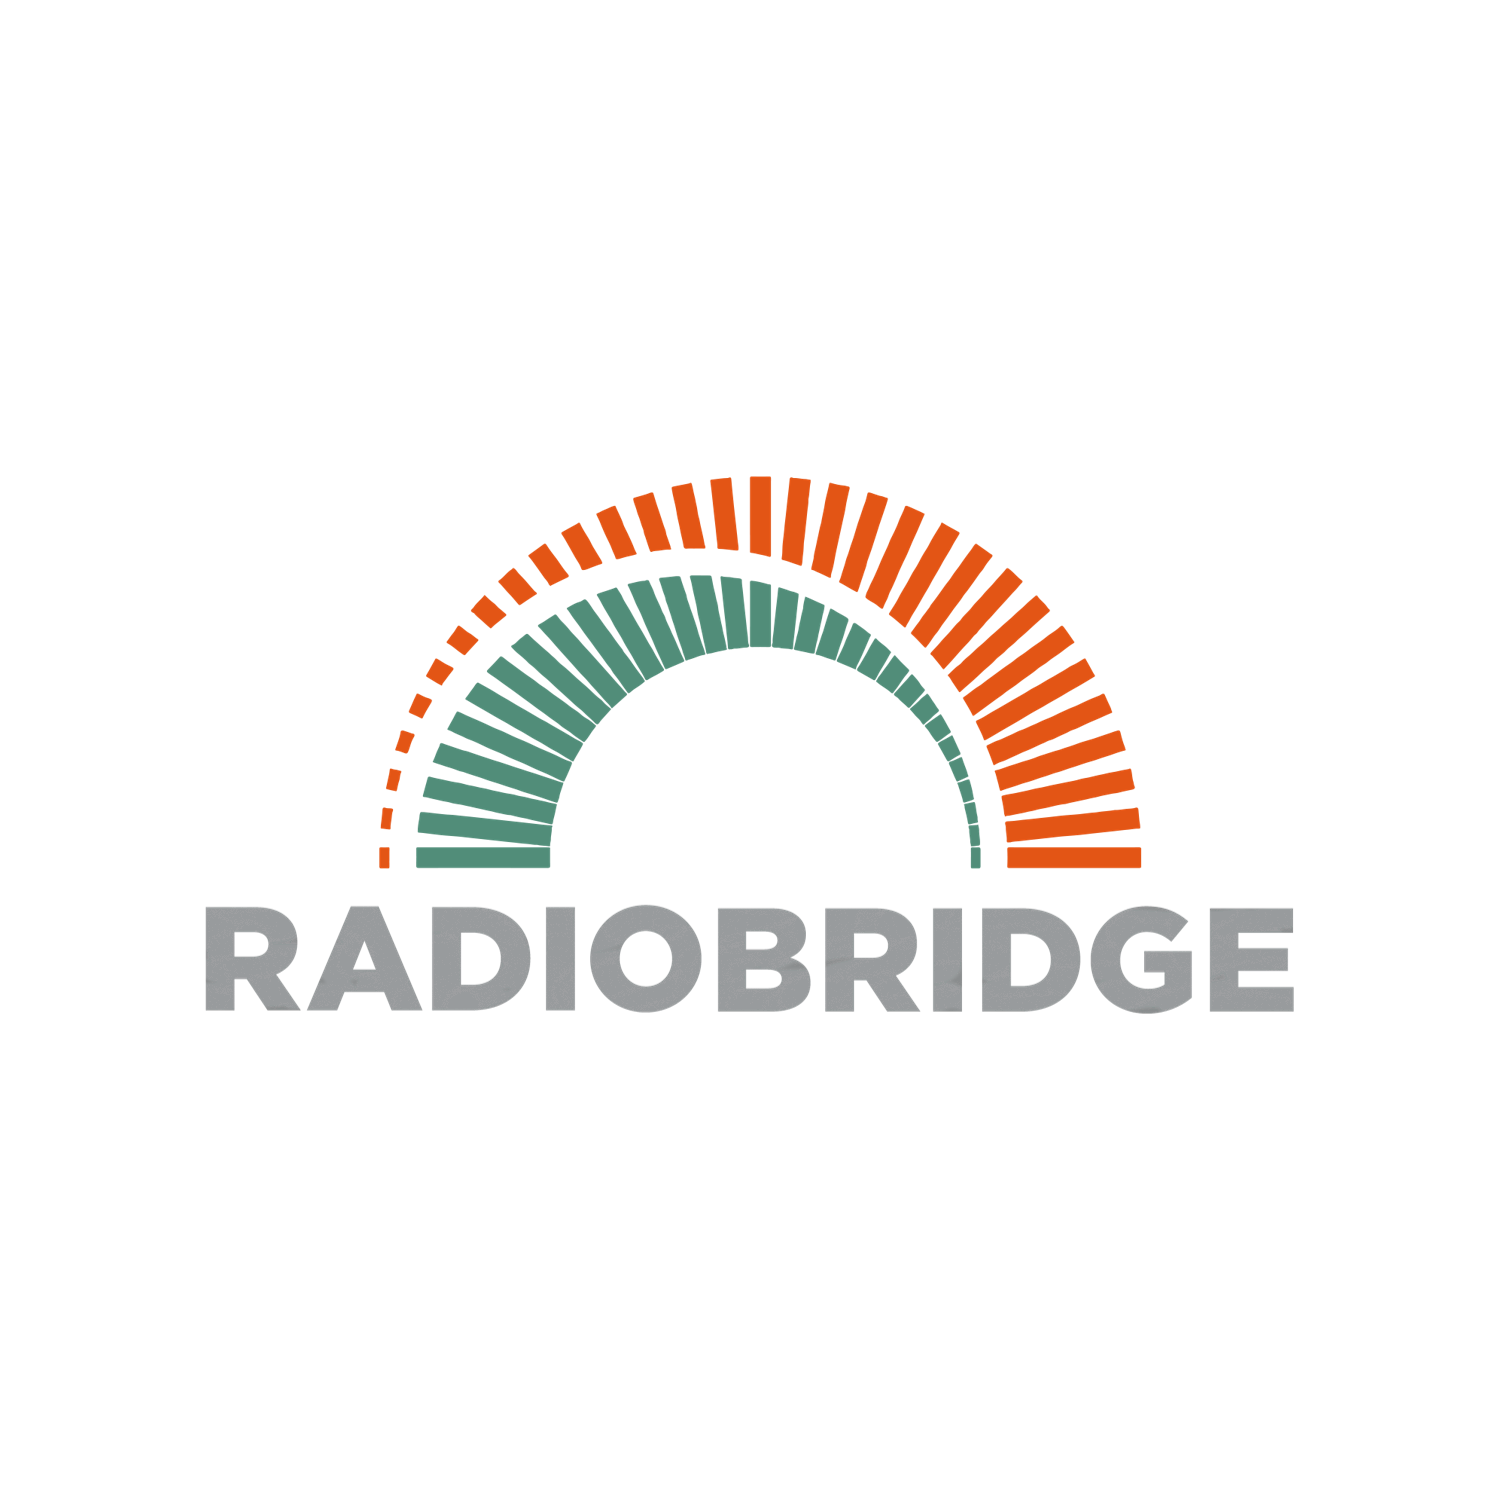 Mediamobile - Radiobridge